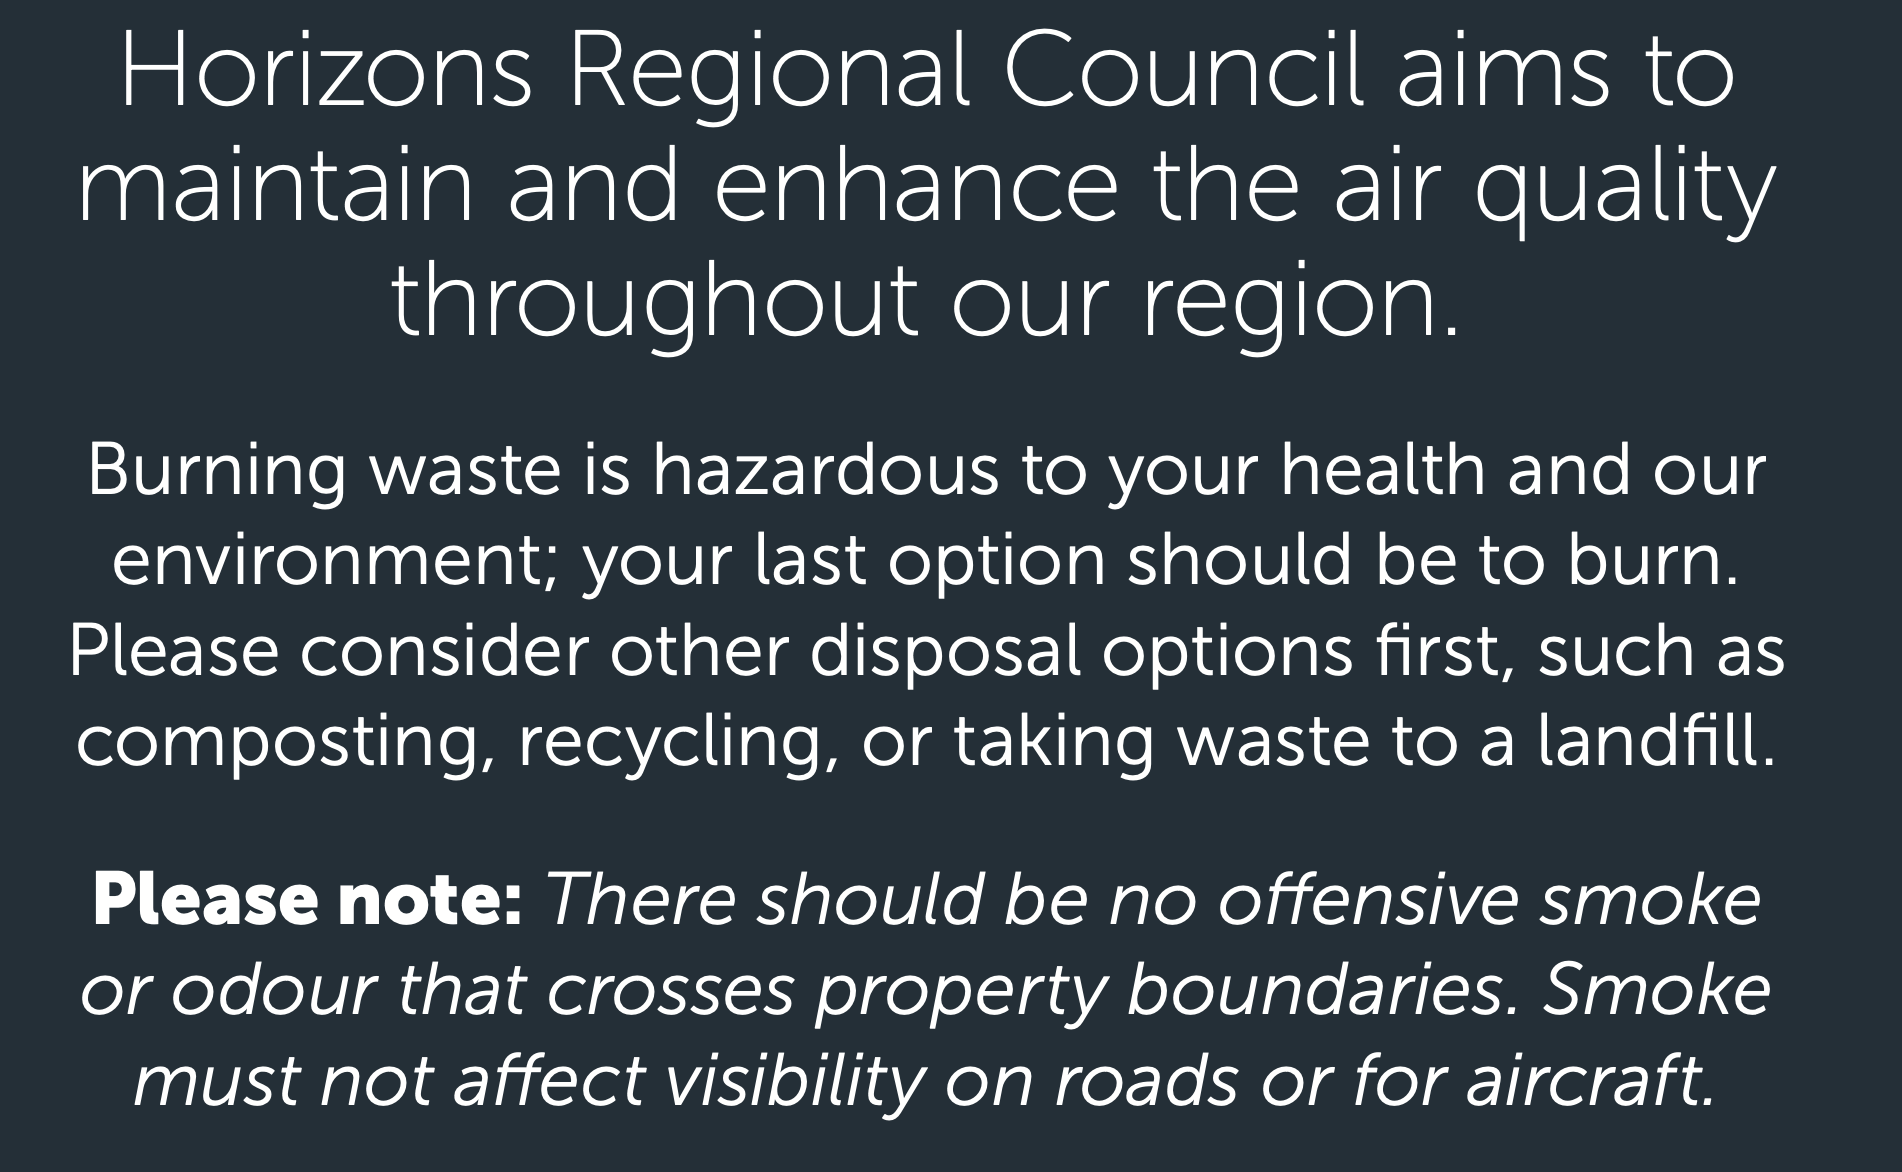 Burning waste notice from Horizons Regional Council.